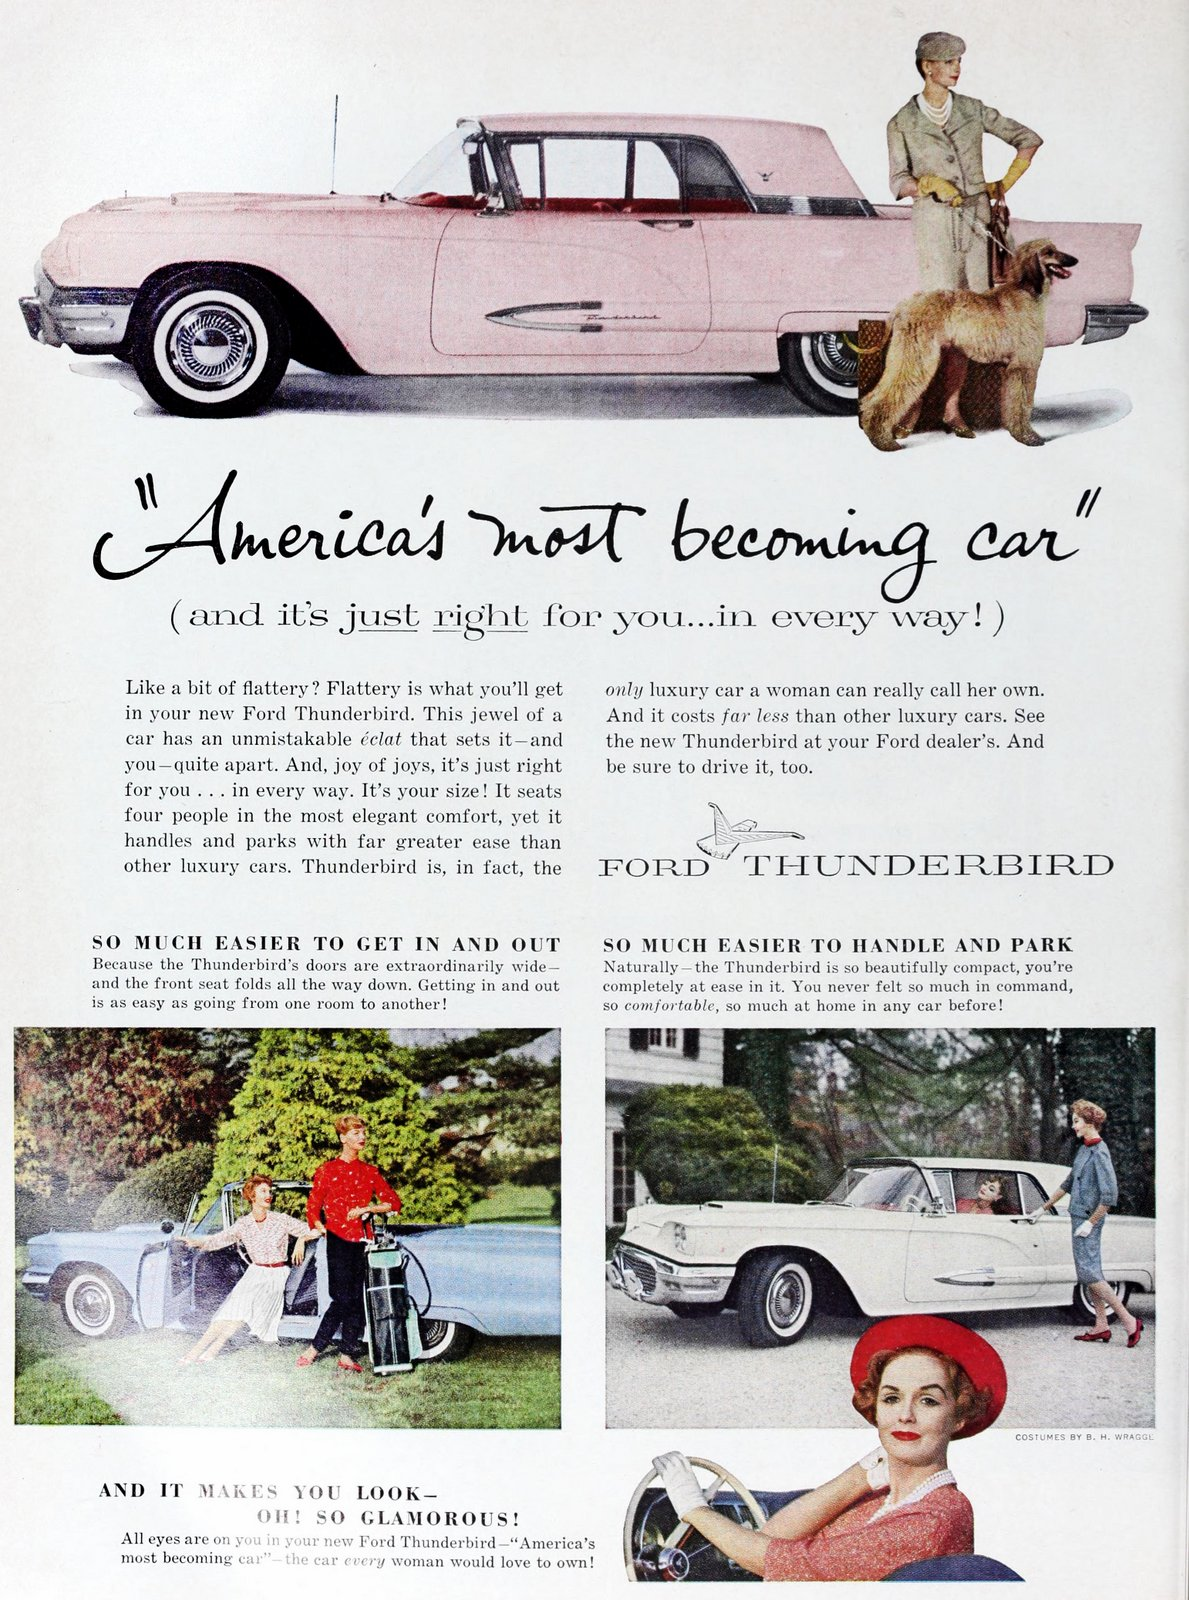 Pink 59 Ford Thunderbird - America's most becoming car